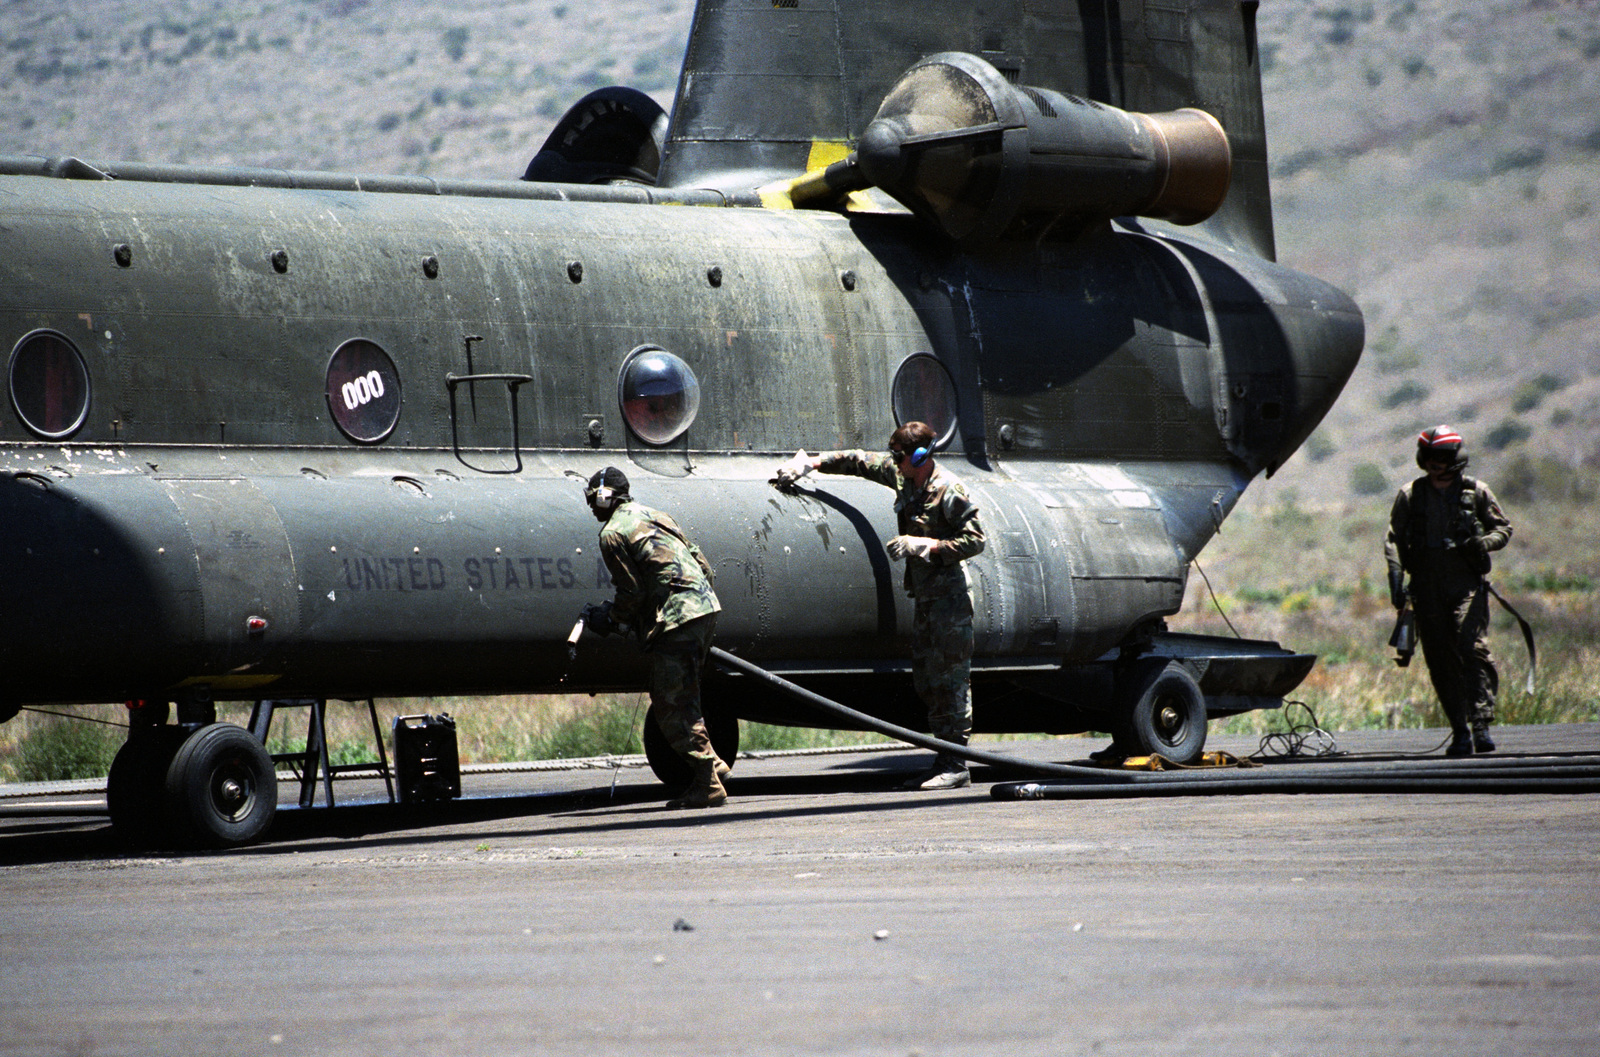 A CH-47 Chinook helicopter is refueled at Bradshaw Air Field during the 21st Infantry Division's annual Army training and evaluation program and field training exercise